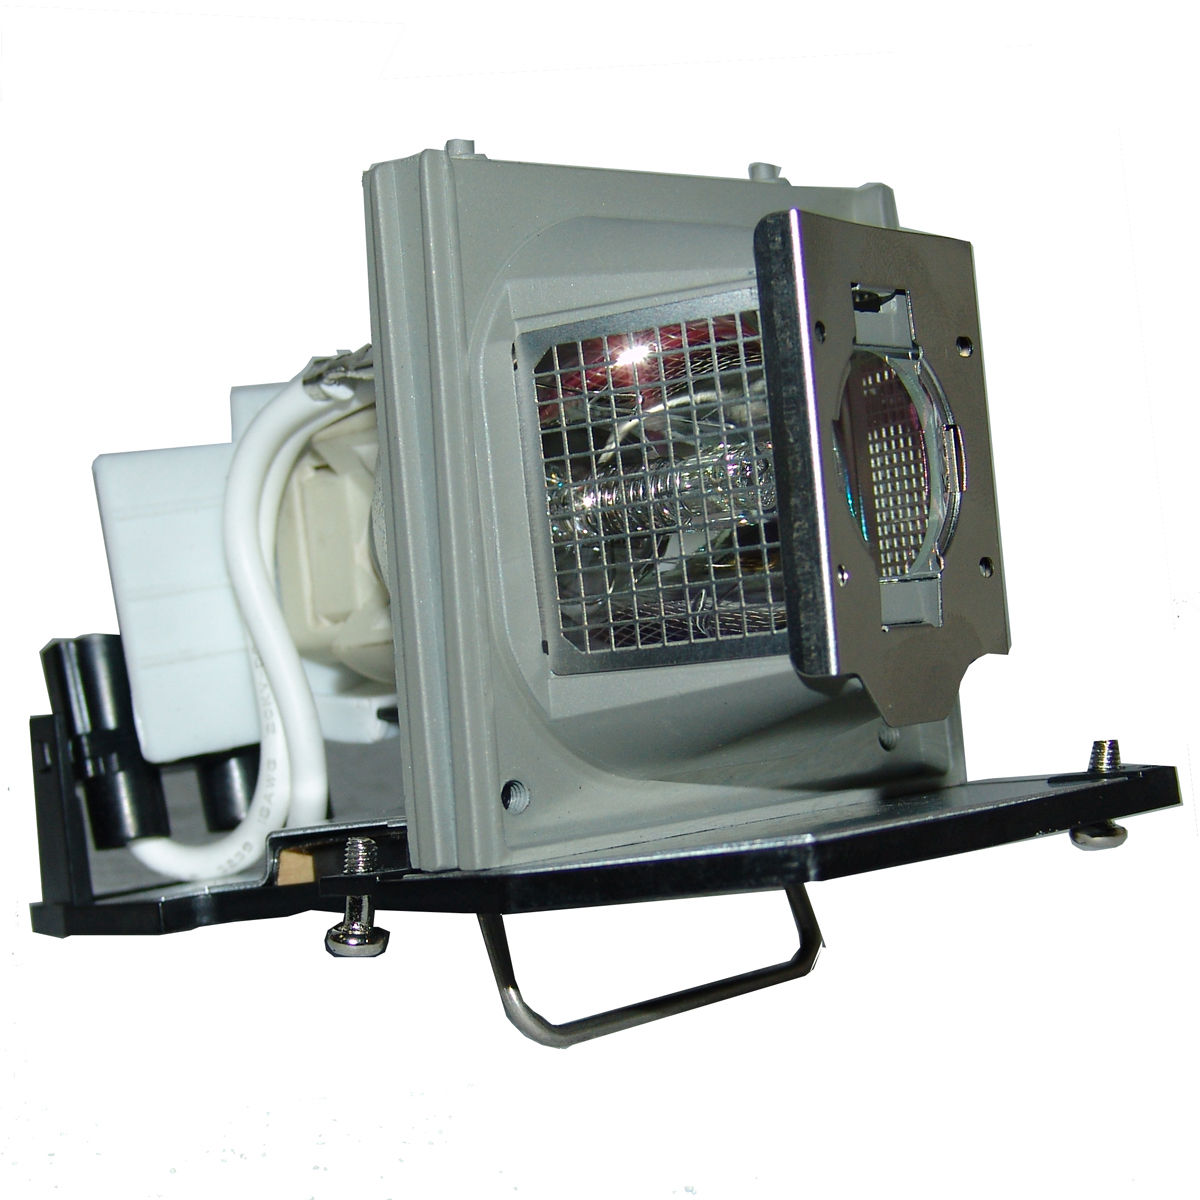 Projector Lamp Bulb BL-FP230A SP.83R01G.001 for OPTOMA DX608 EP747 EP7475 EP7477 EP7479 EP747A EP747H EP747N EP747T With Housing compatible projector lamp for optoma bl fp230a sp 83r01g 001 dx608 ep747 ep7475 ep7477 ep7479 ep747a ep747h ep747n ep747t